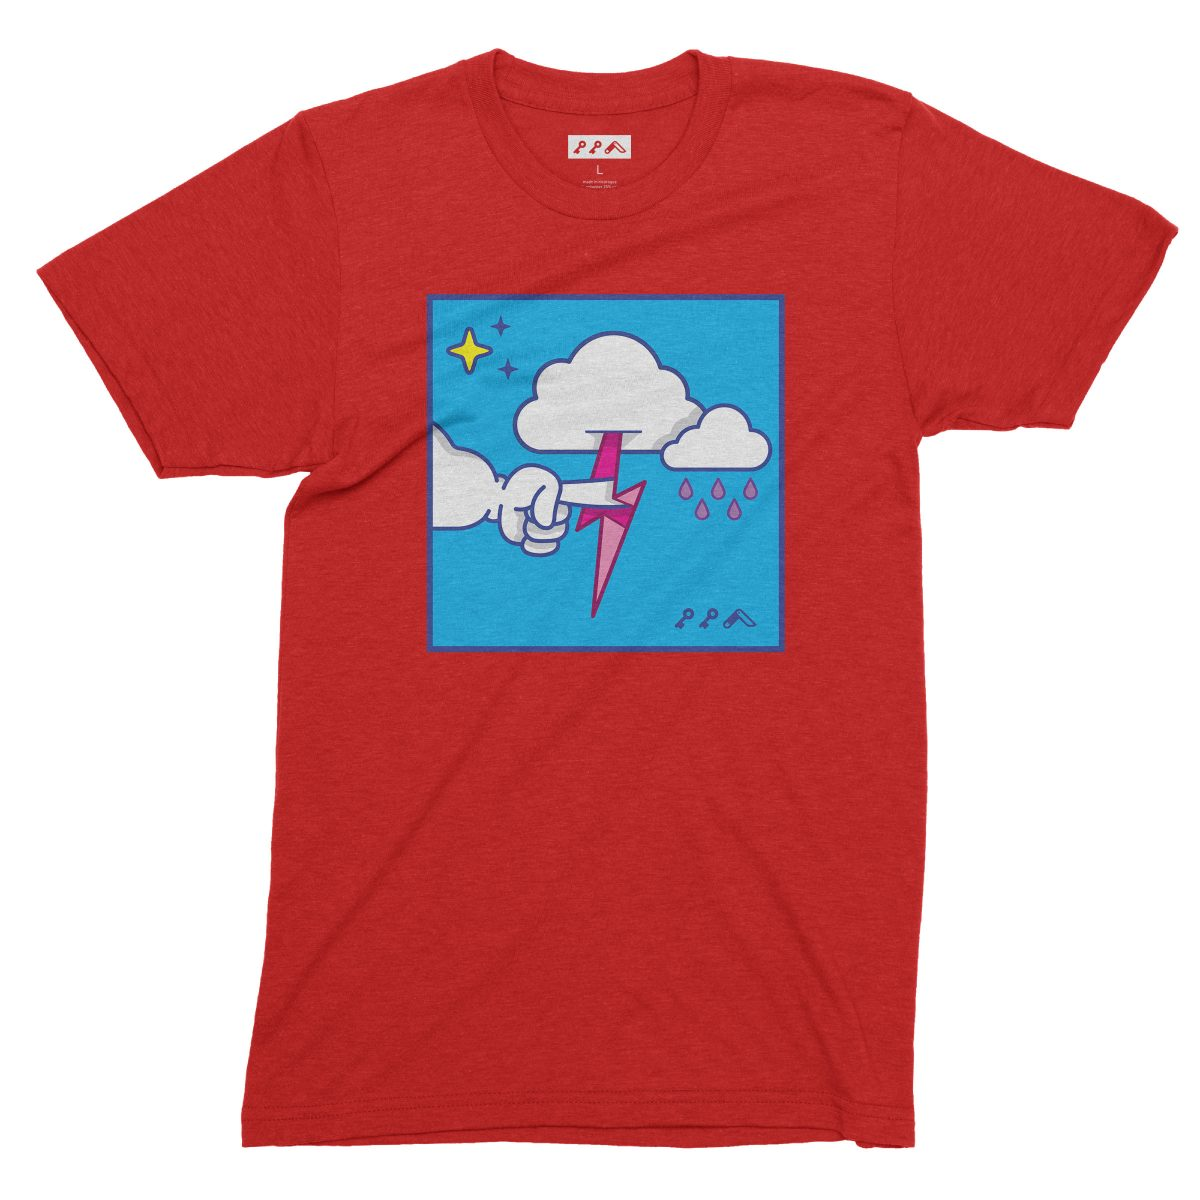 """""""MUTUAL CLOUDSENT"""" funny adult cartoon animation style tee in red by kikicutt"""